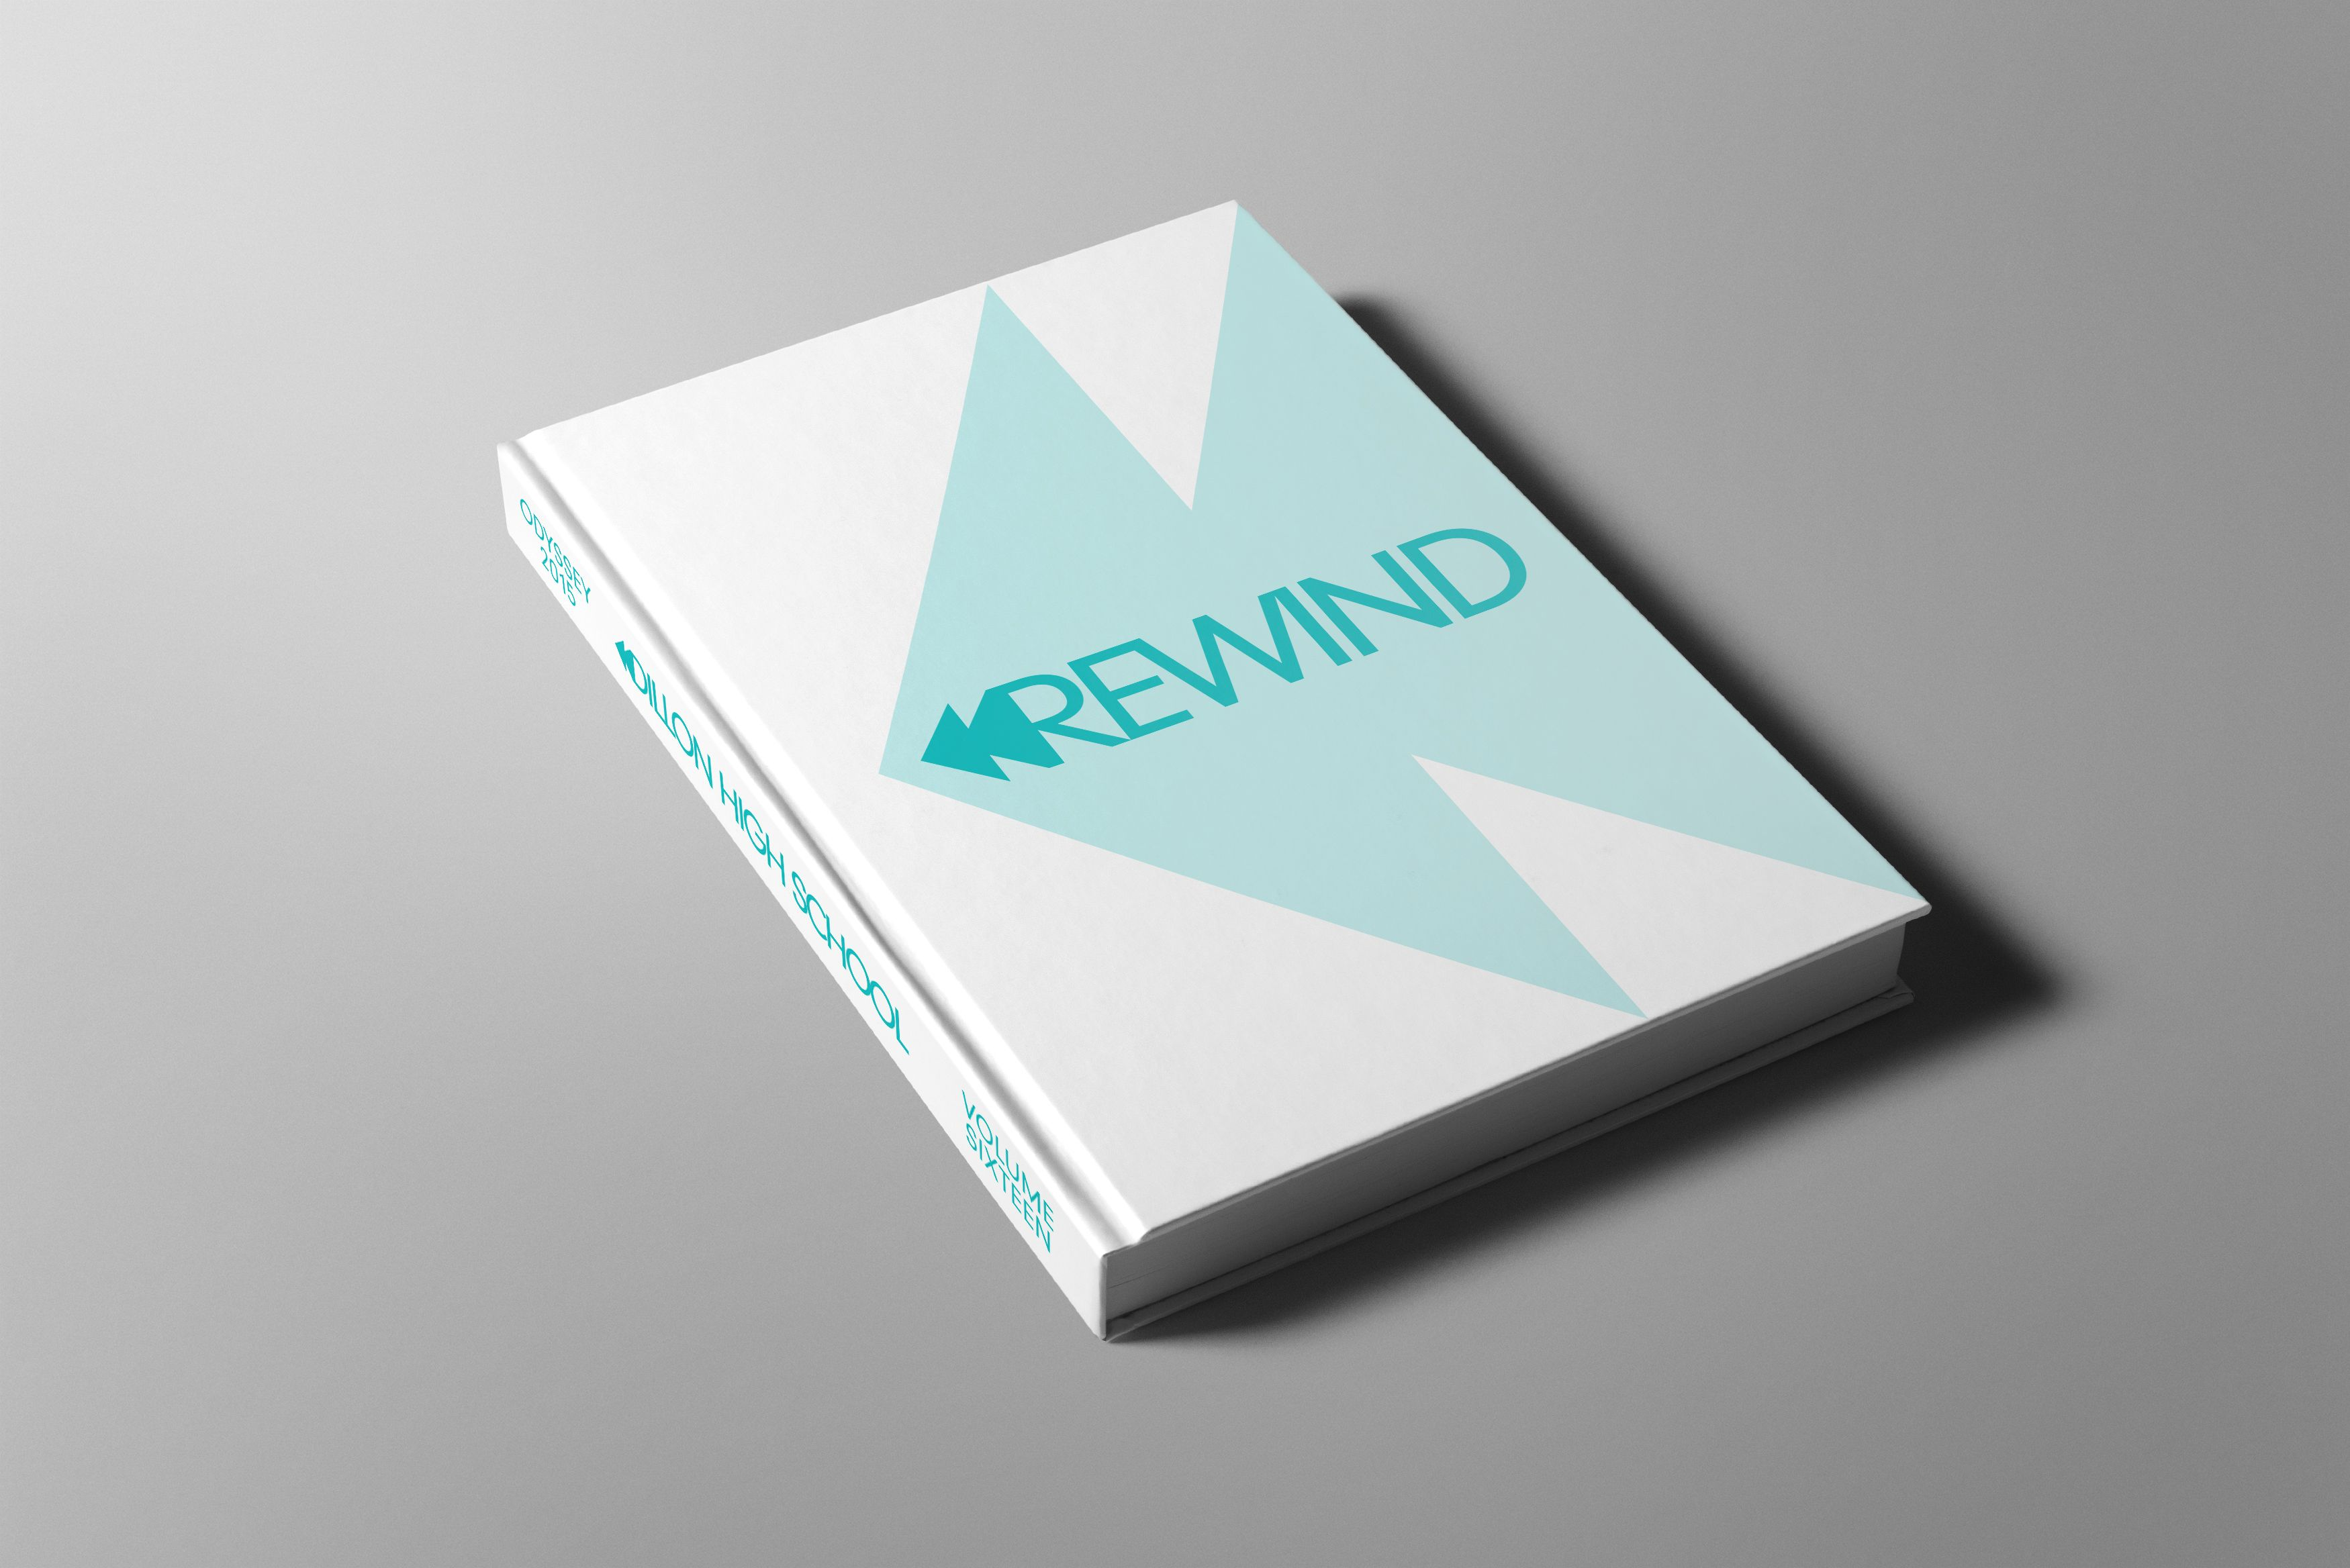 Rewind theme yearbook great theme for an anniversary yearbook